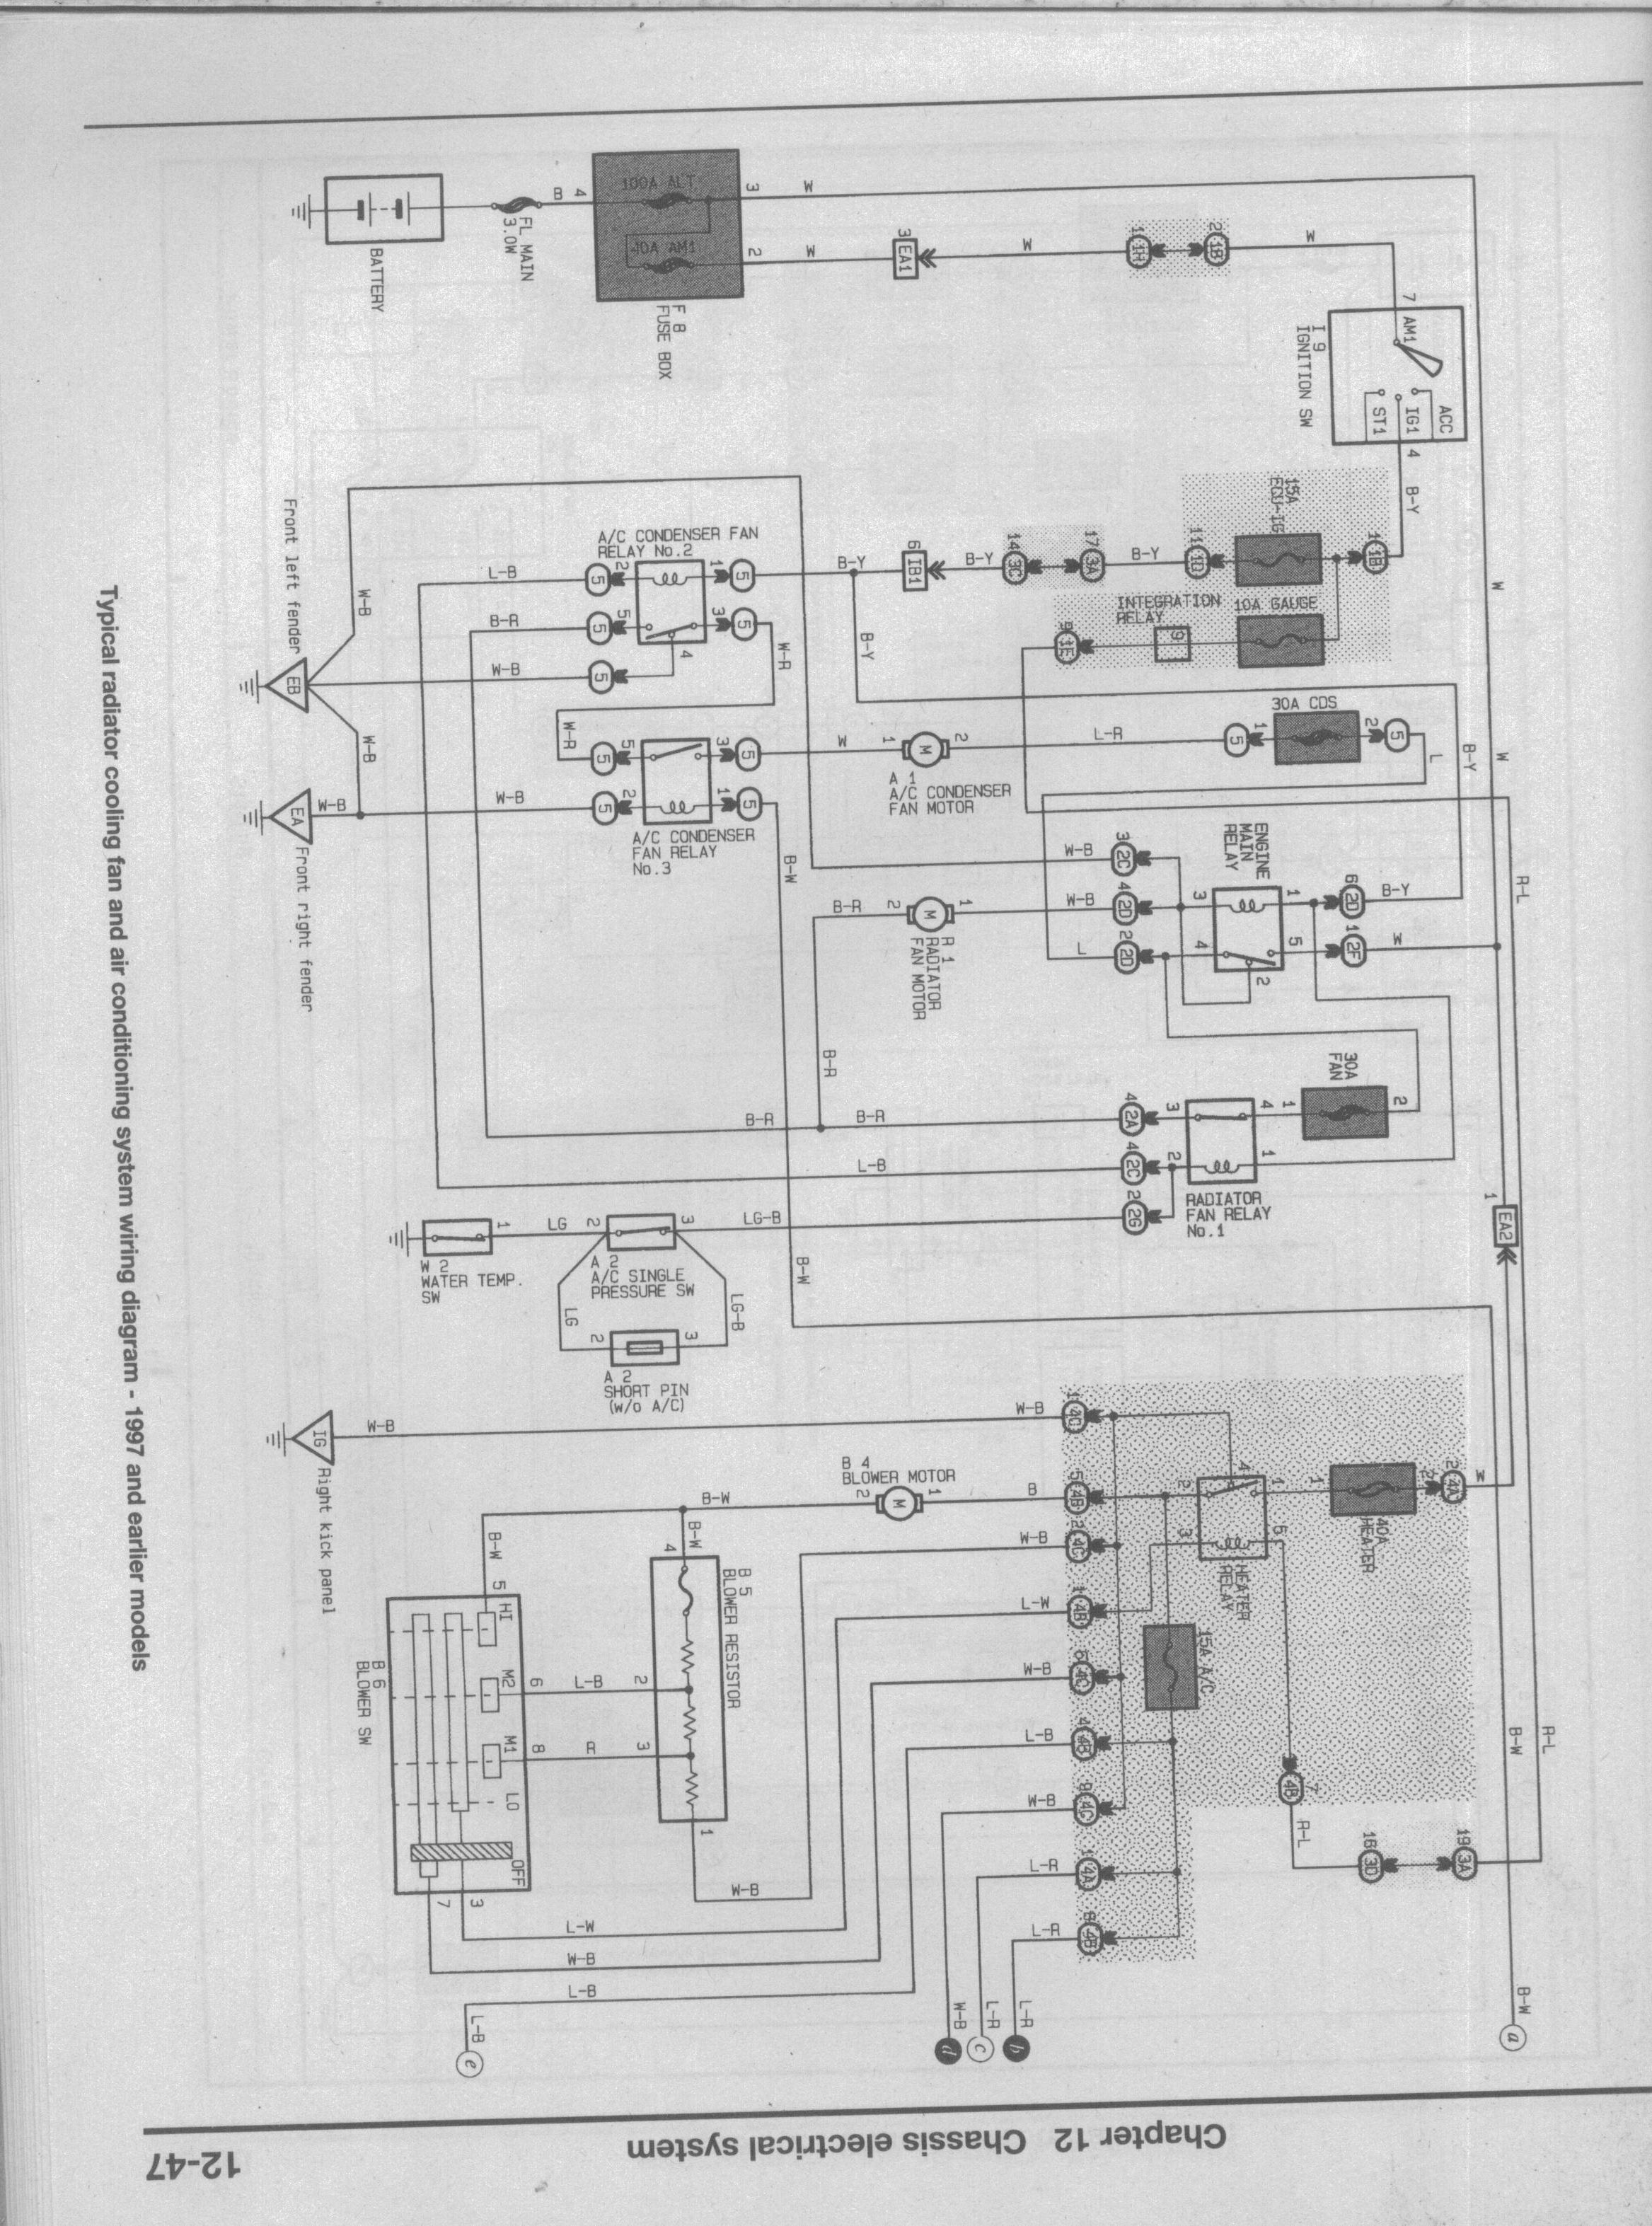 Coleman Ac Unit Wiring Diagram Free Download also Kenmore 80 Series Wiring furthermore Dehumidifier Parts Diagram further 231286376394 moreover Dehumidifier Parts Diagram. on friedrich wiring diagrams